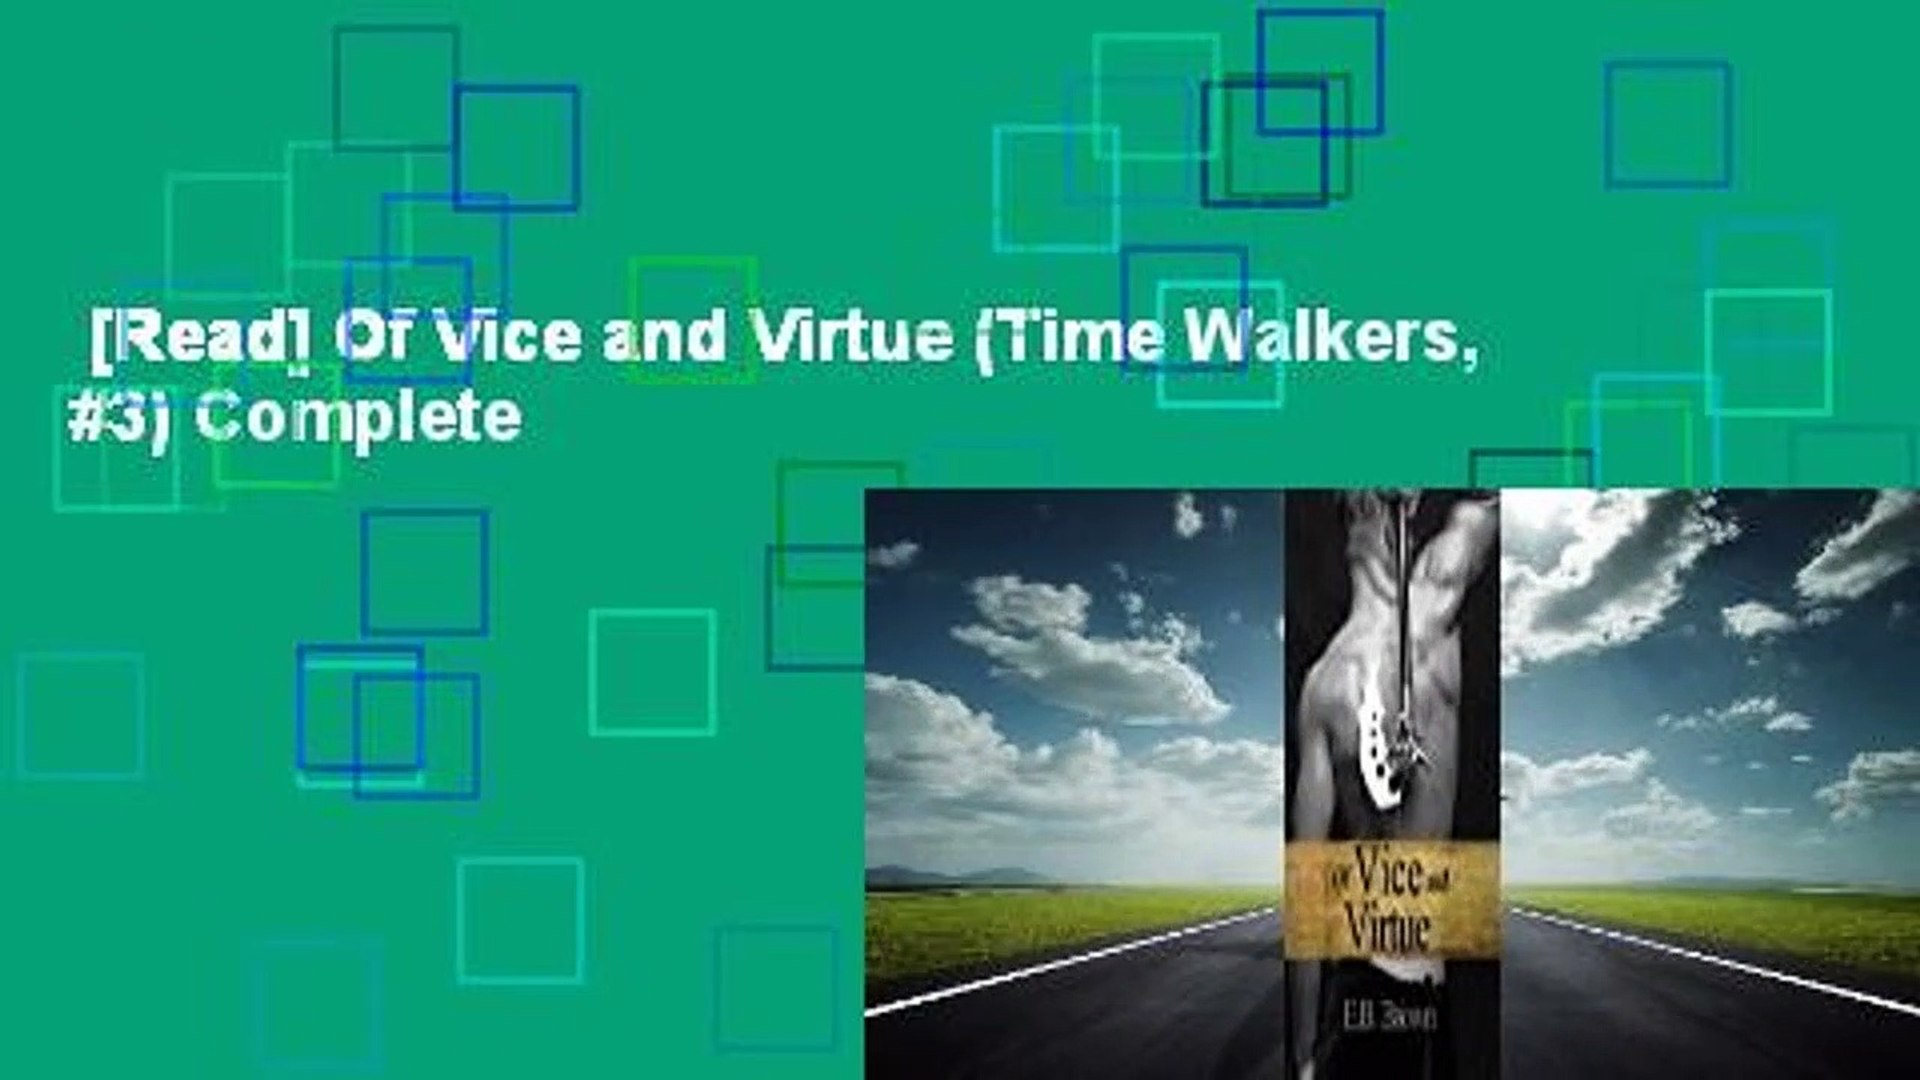 [Read] Of Vice and Virtue (Time Walkers, #3) Complete